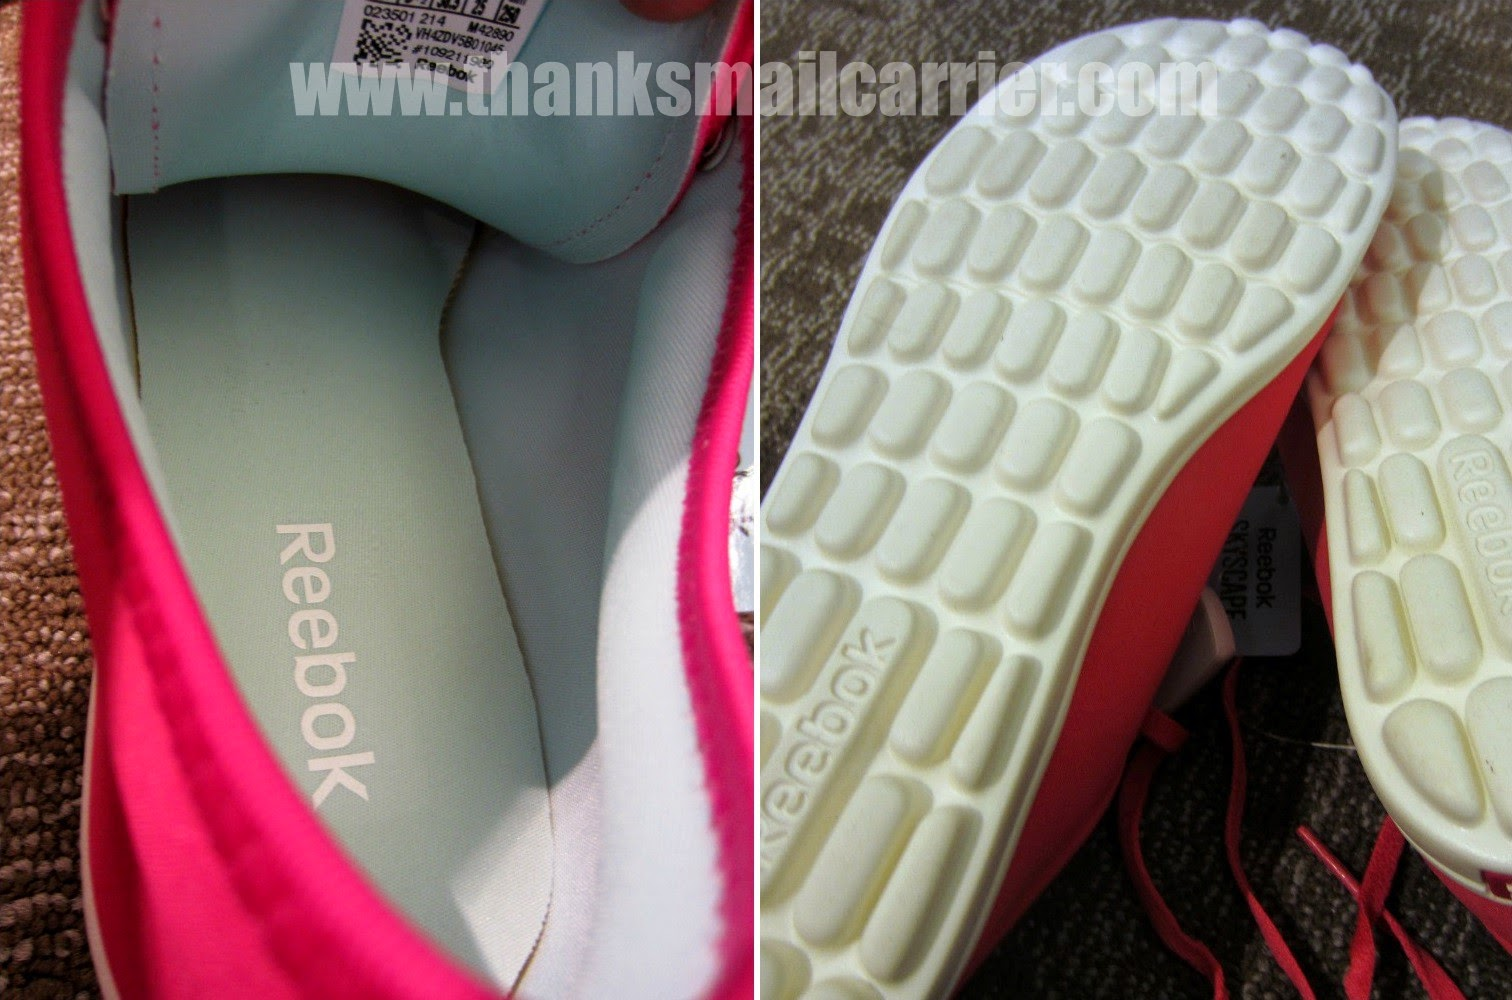 Reebok Skyscape cushion